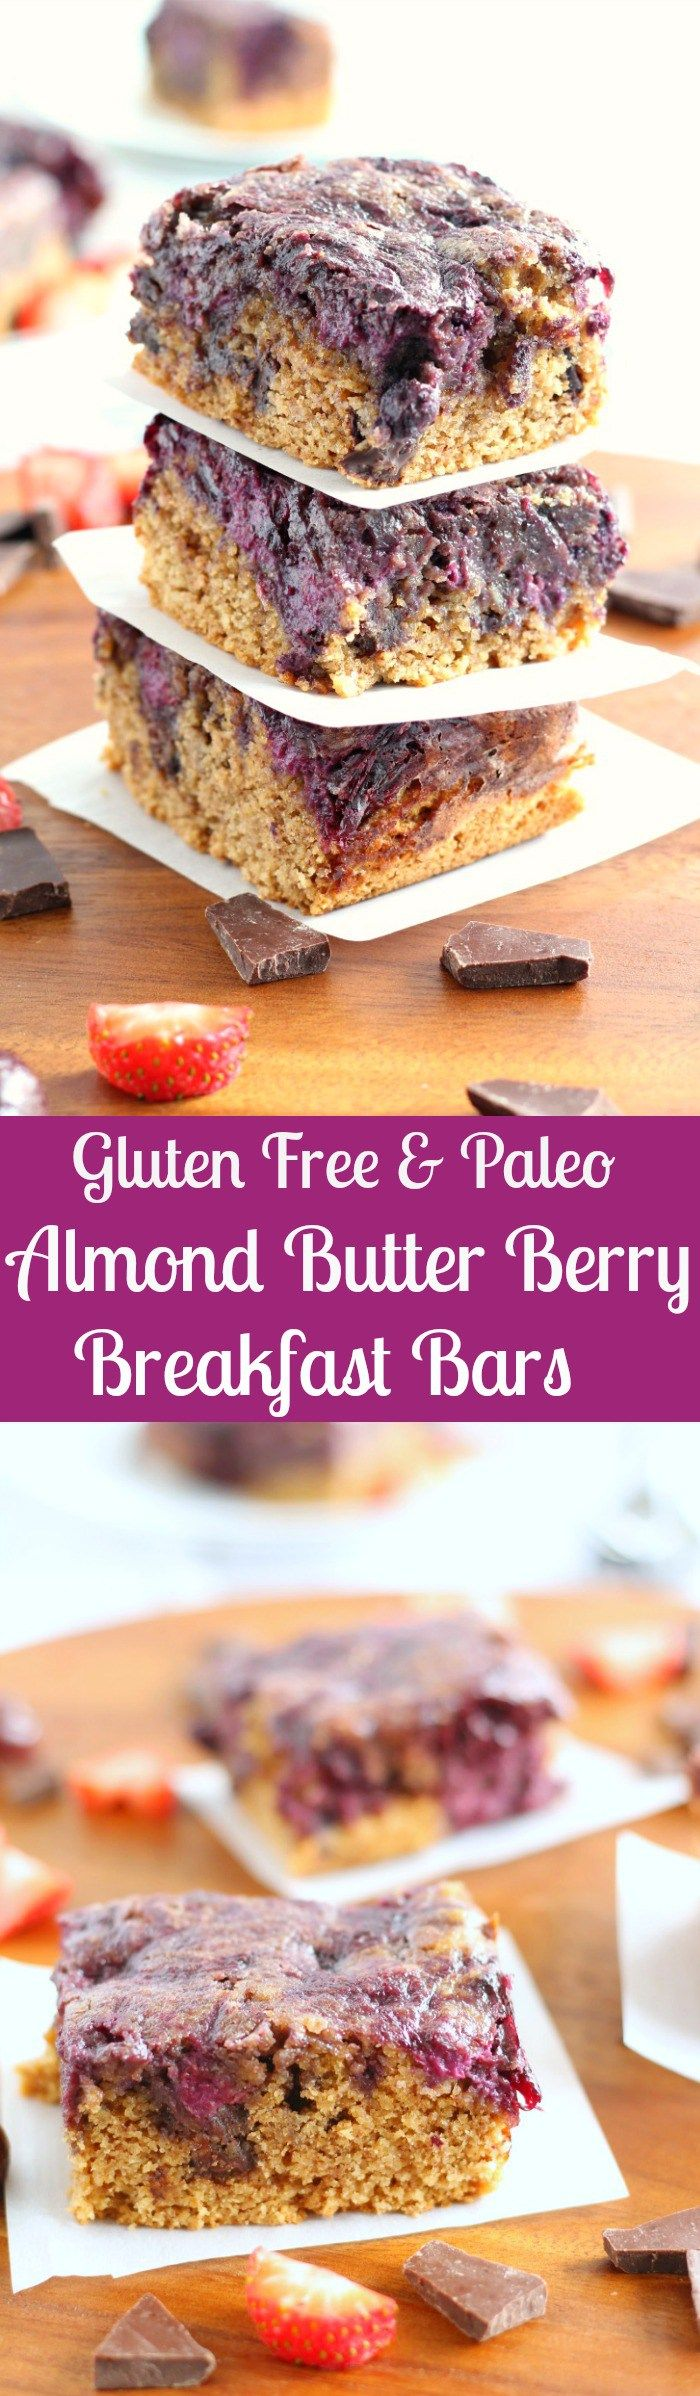 Gluten Free and Paleo Almond Butter Berry Breakfast Bars - paleorunningmomma.com